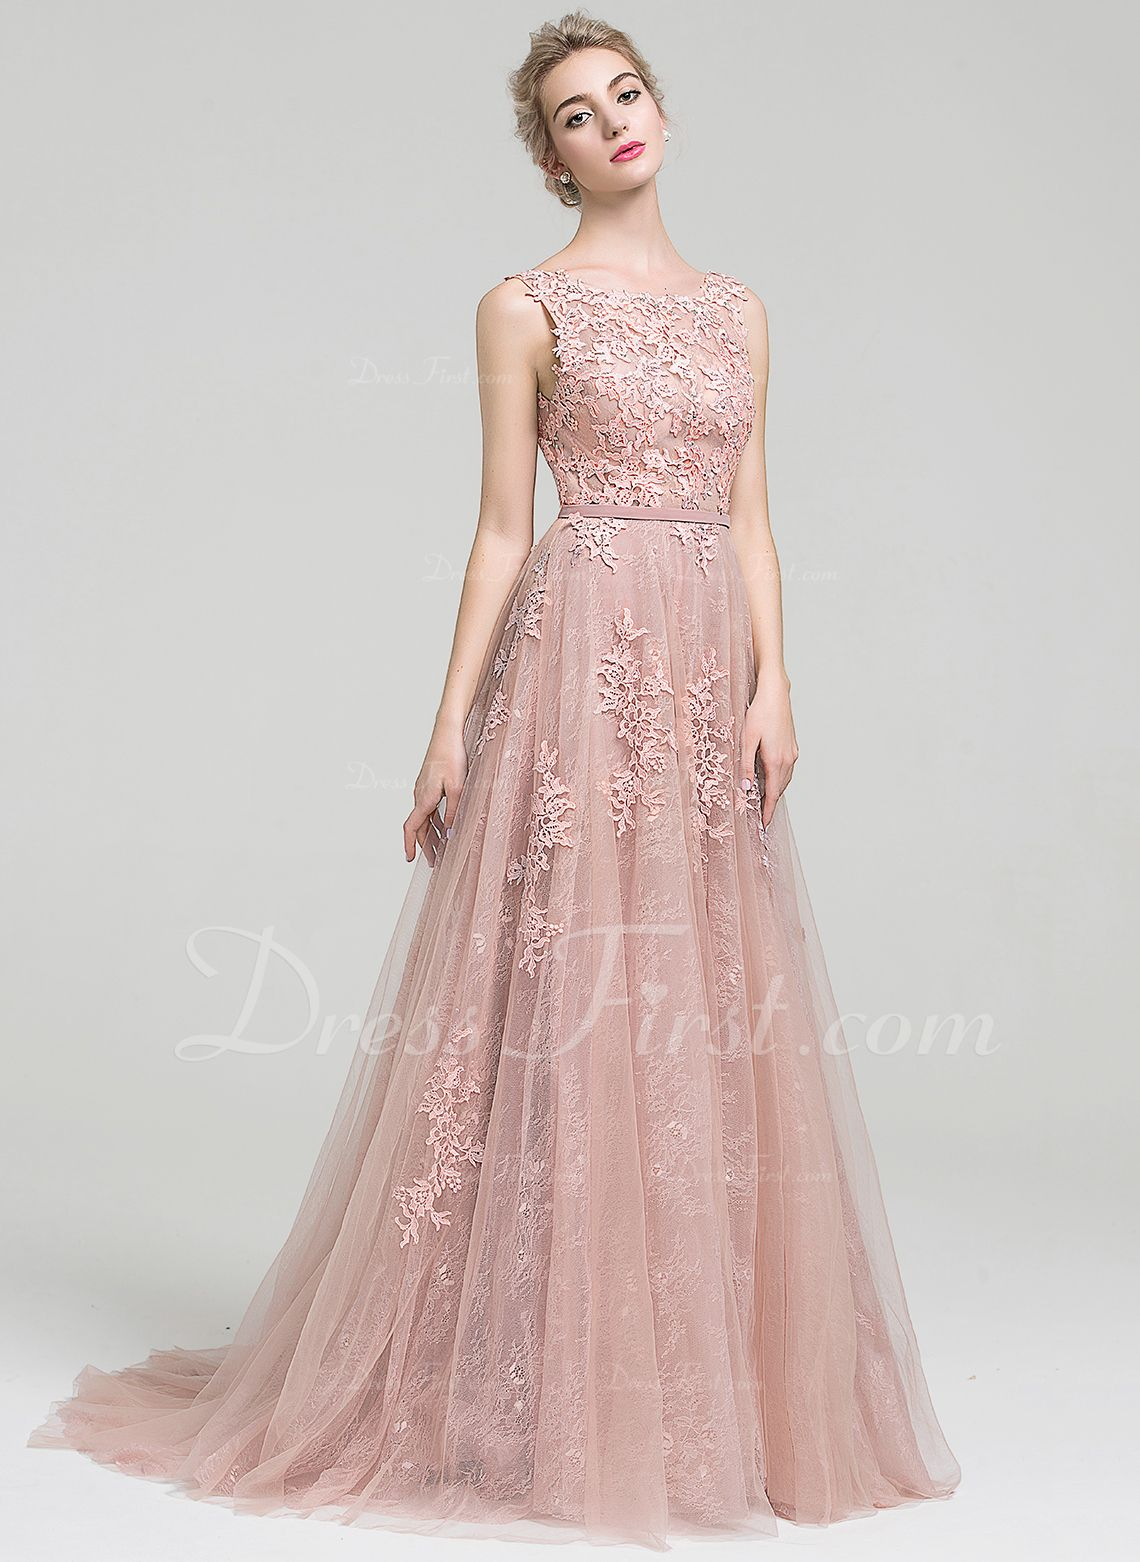 a4b75bcad191 A-Line/Princess Scoop Neck Court Train Tulle Lace Evening Dress With  Beading (017093495) - DressFirst